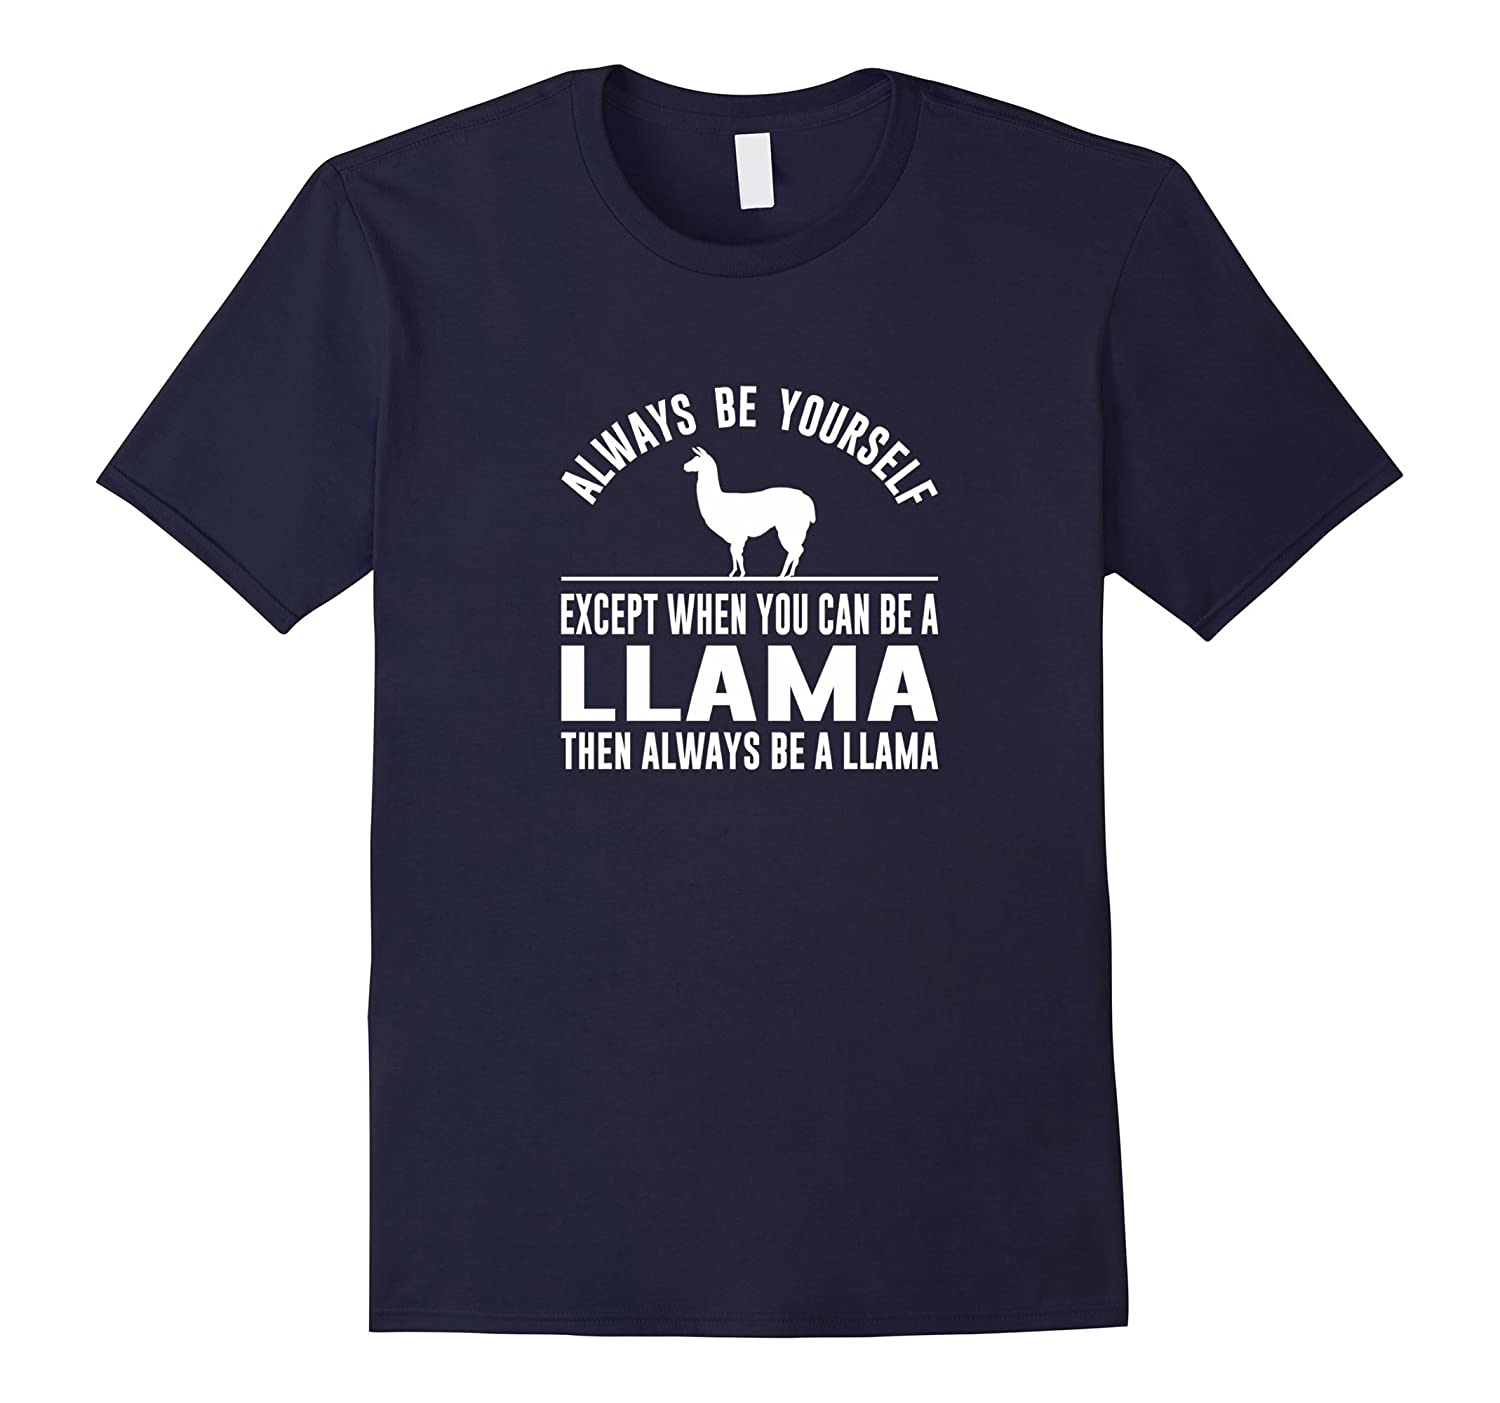 Always Be Yourself - Except When You Can Be a Llama Shirt-BN